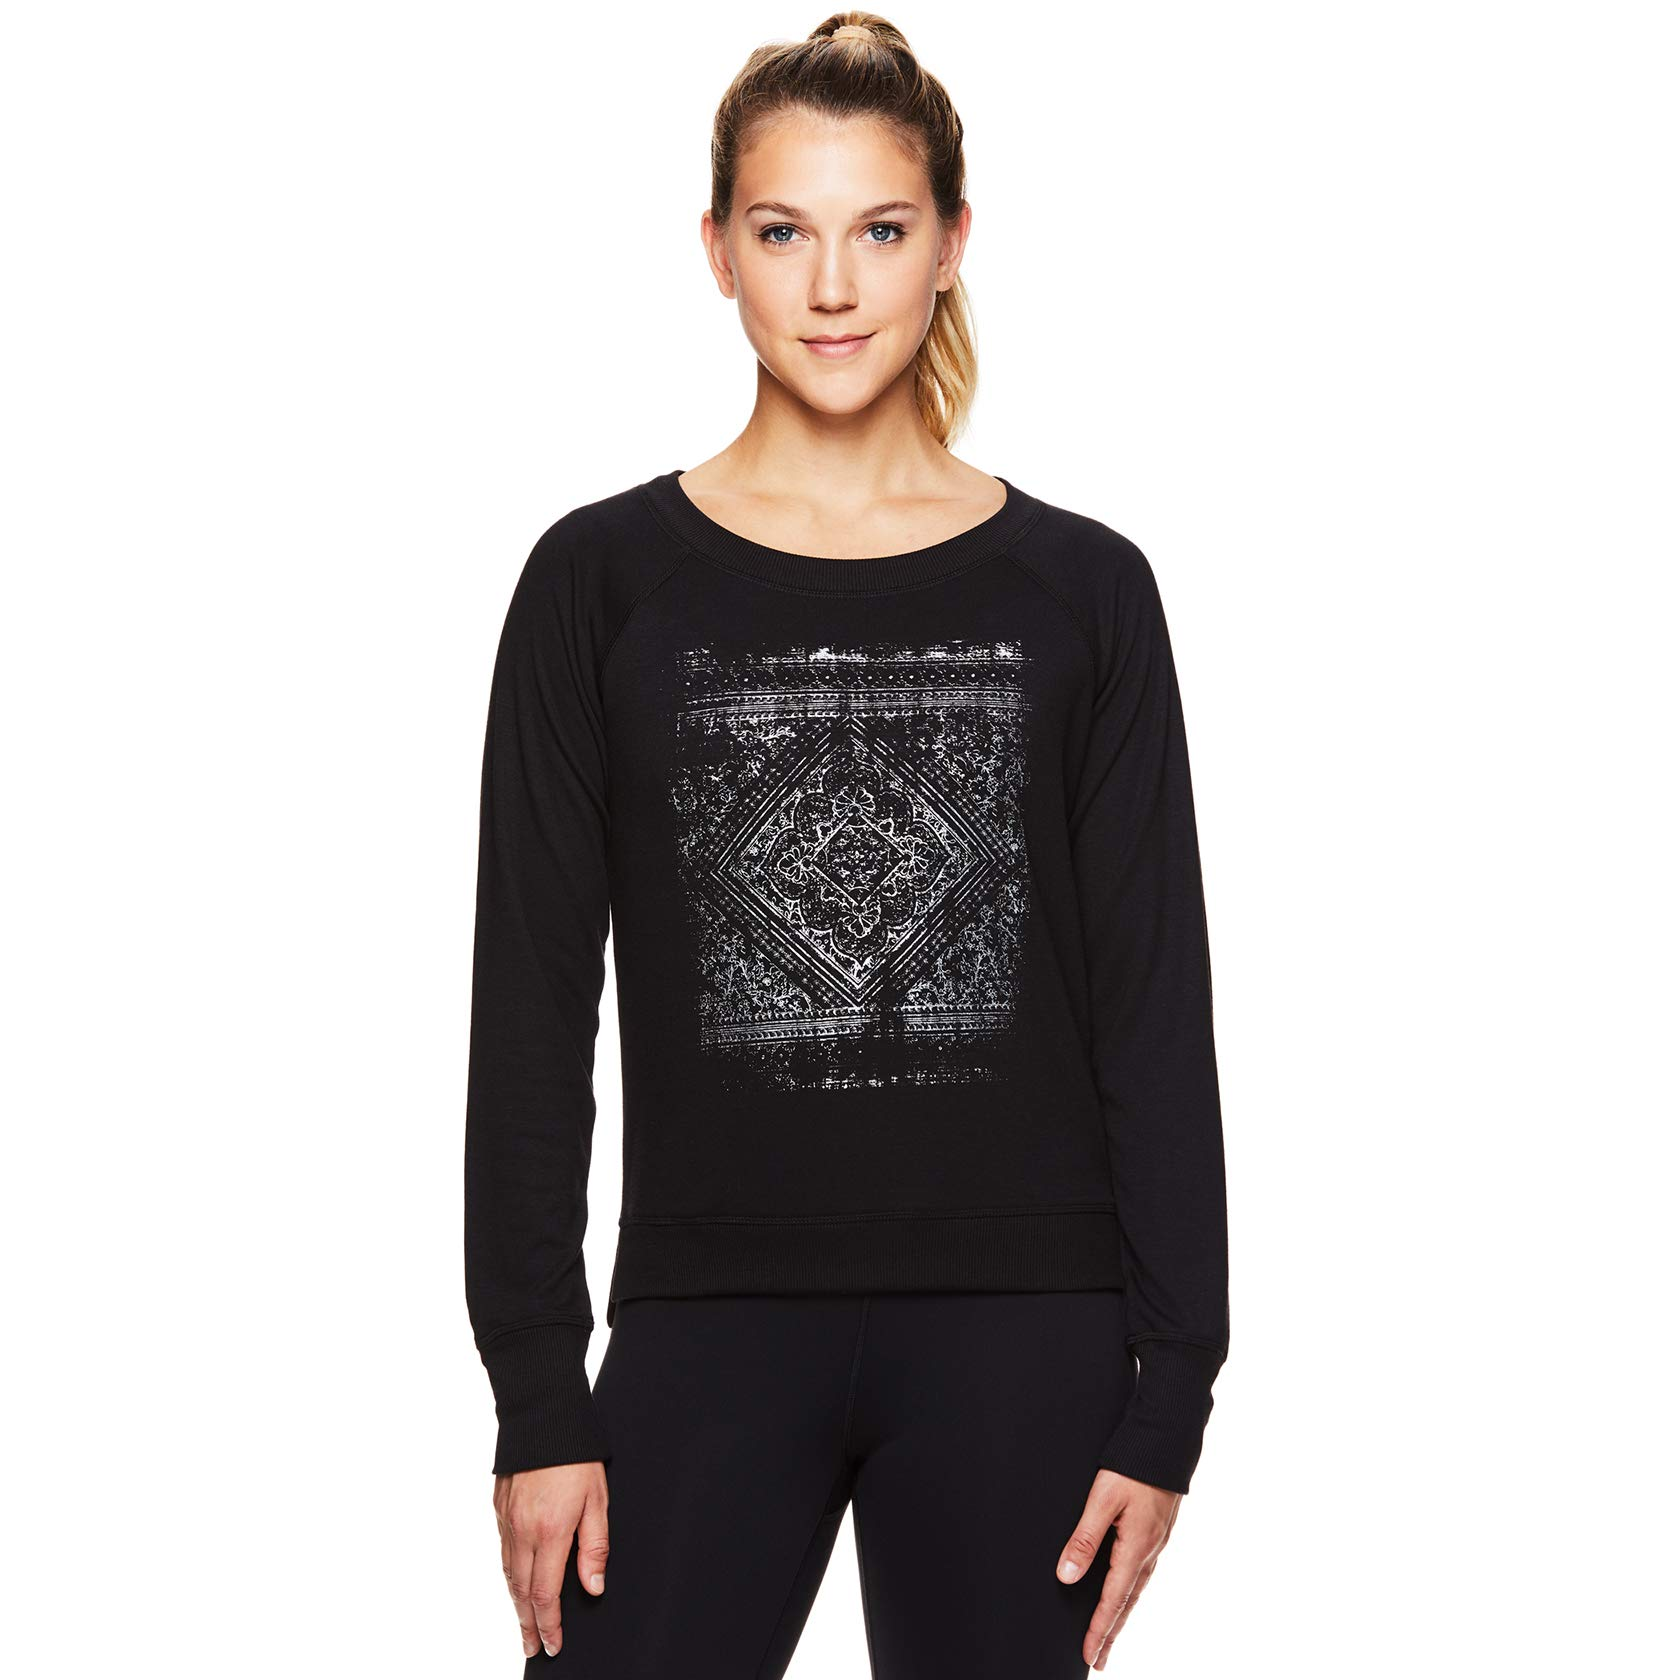 Gaiam Women's Pullover Yoga Sweater - Long Sleeve Graphic Activewear Shirt - Calla Popover Black, Medium by Gaiam